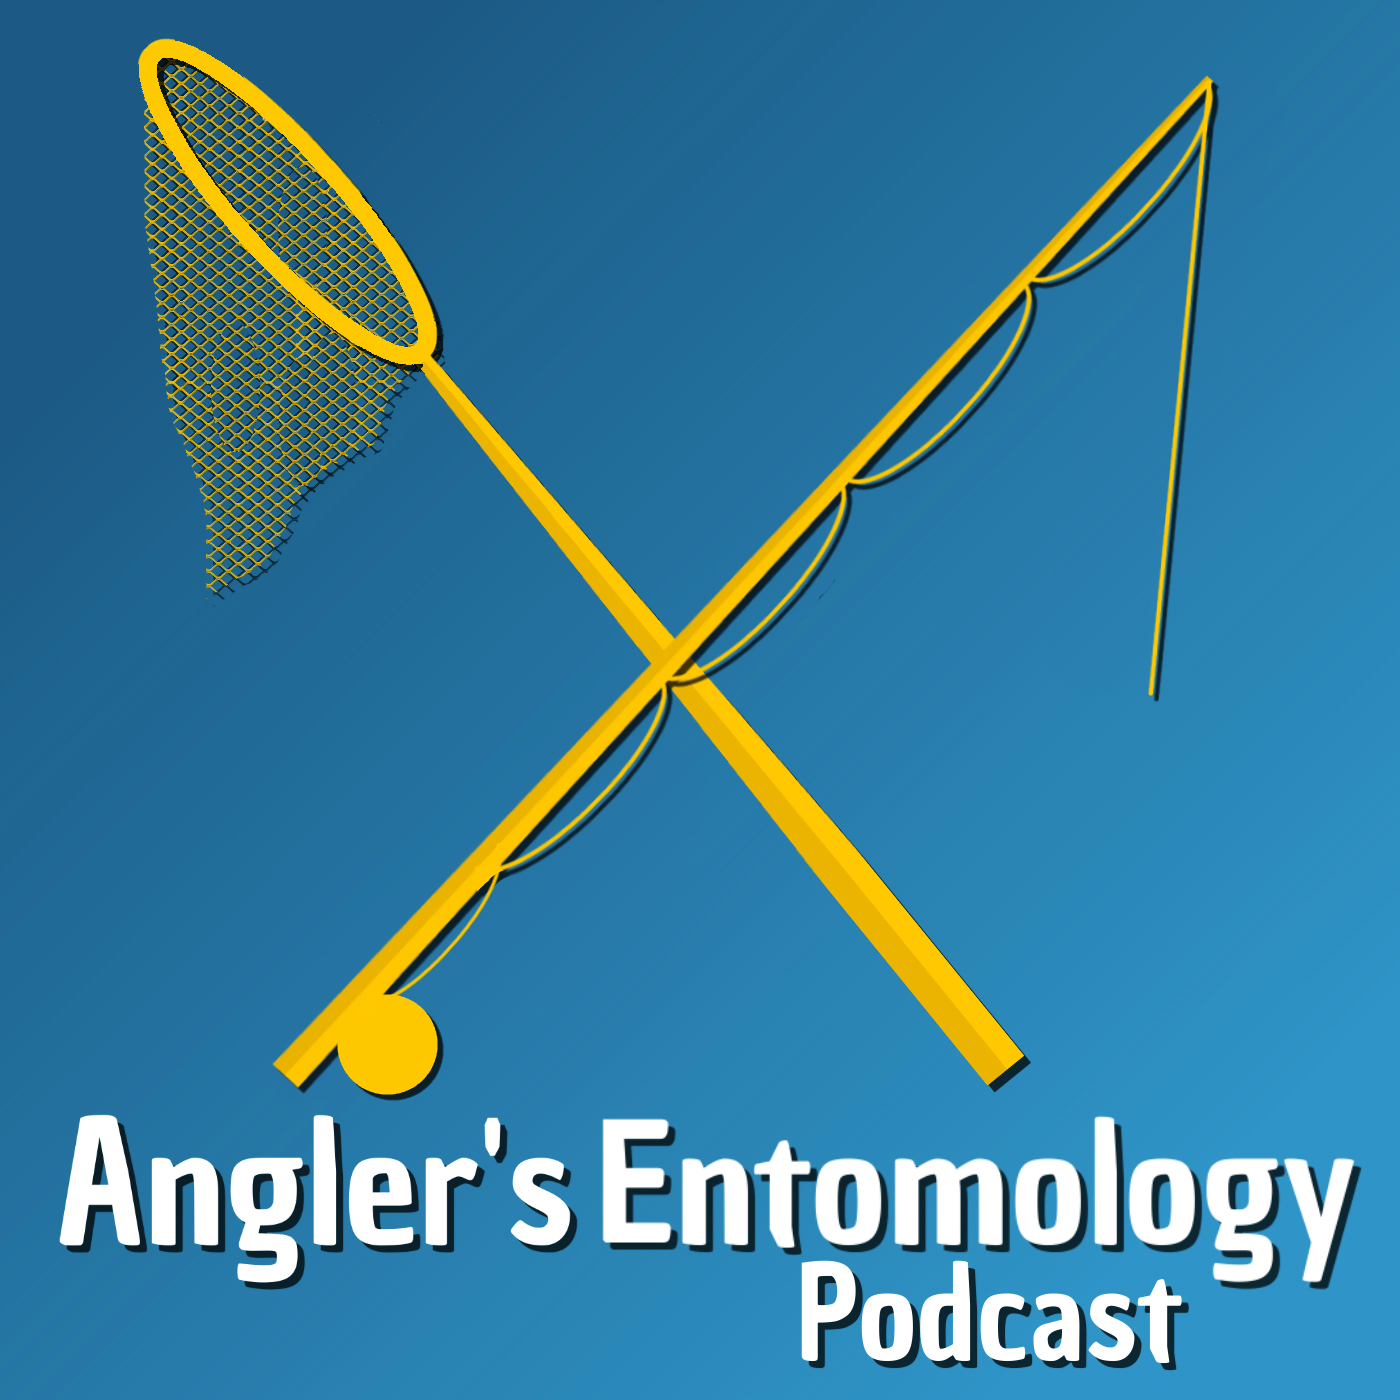 Angler's Entomology Podcast